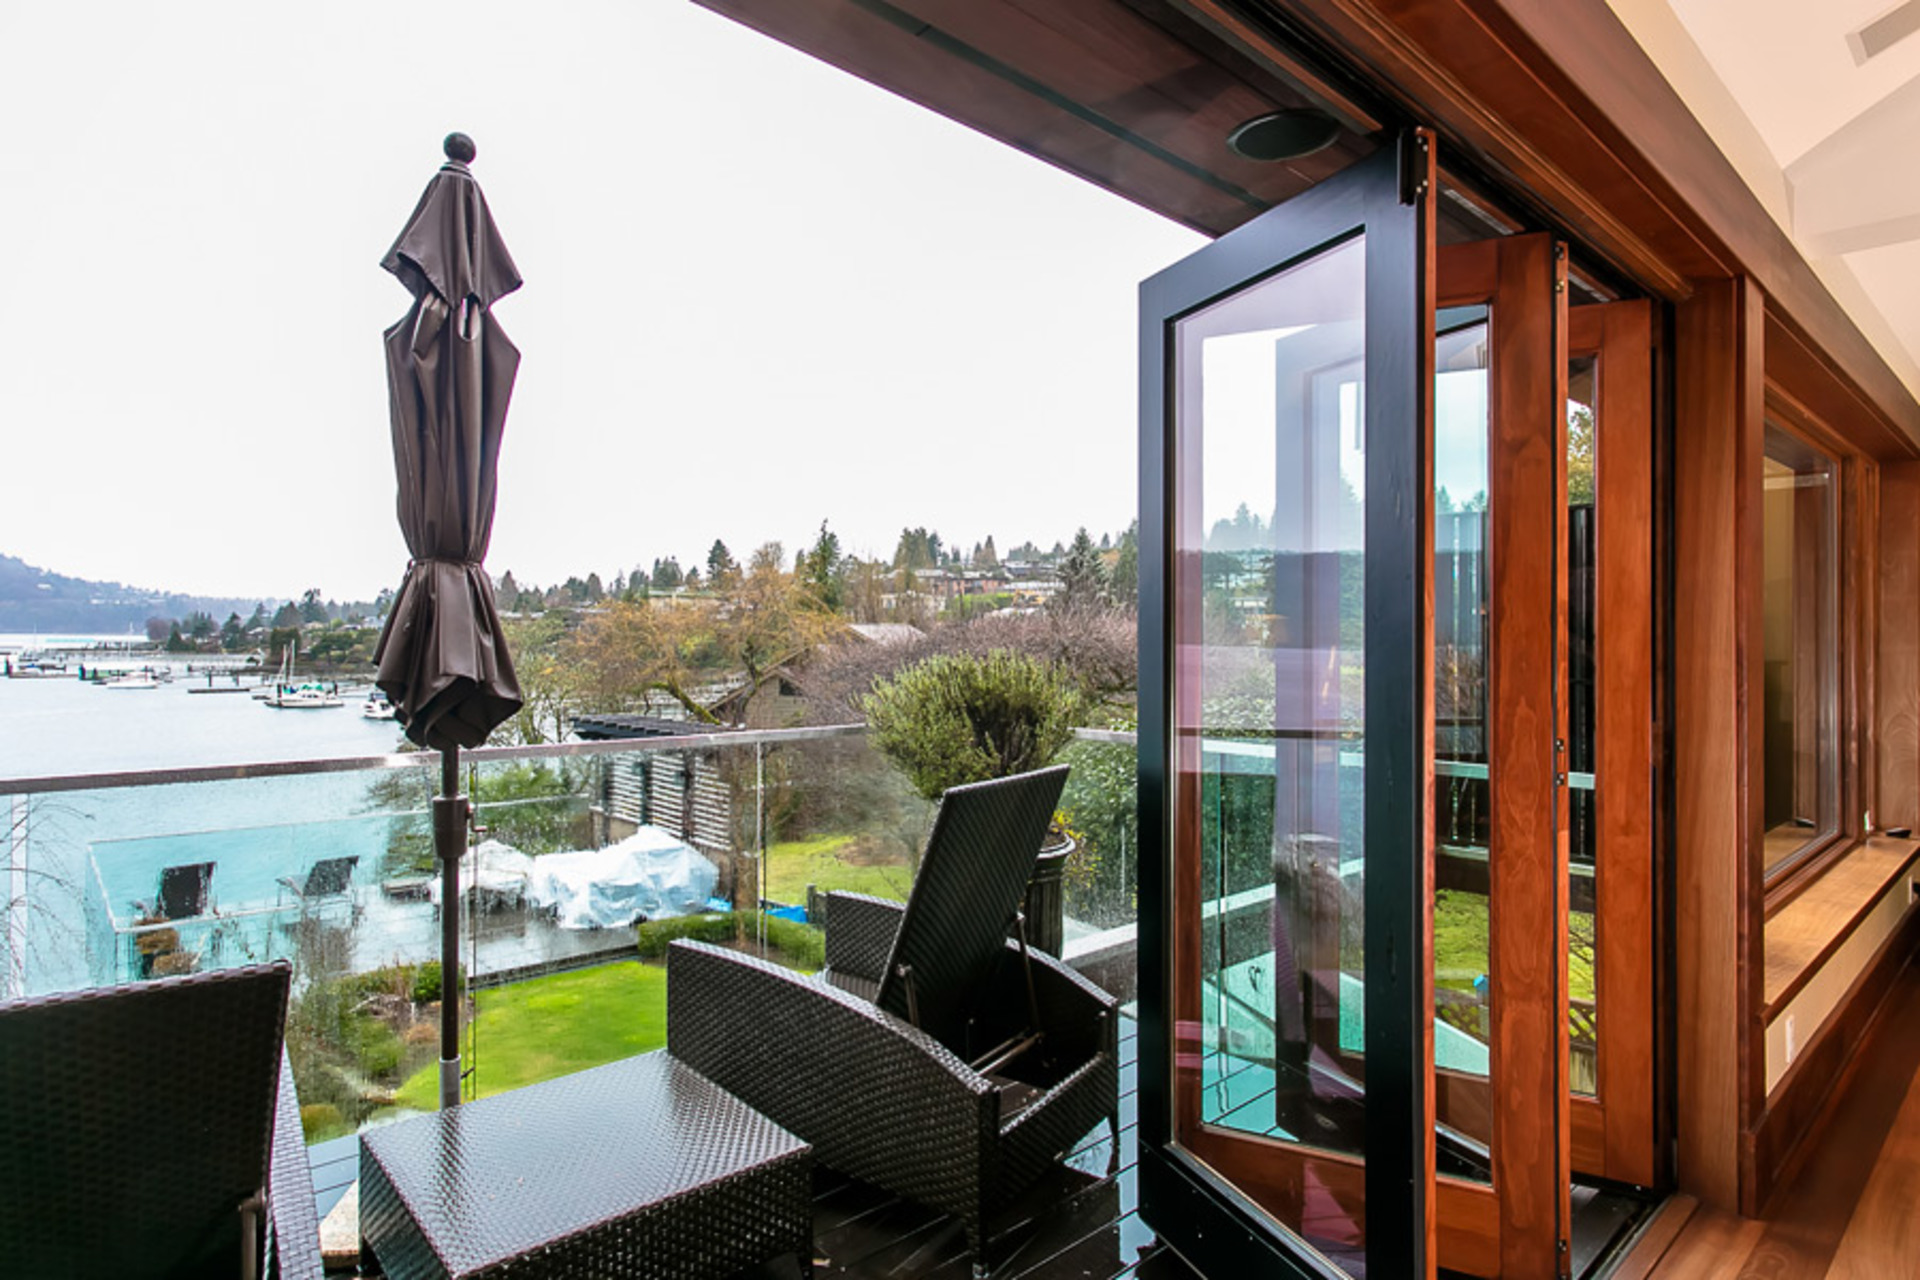 Balcony at Address Upon Request, Deep Cove, North Vancouver